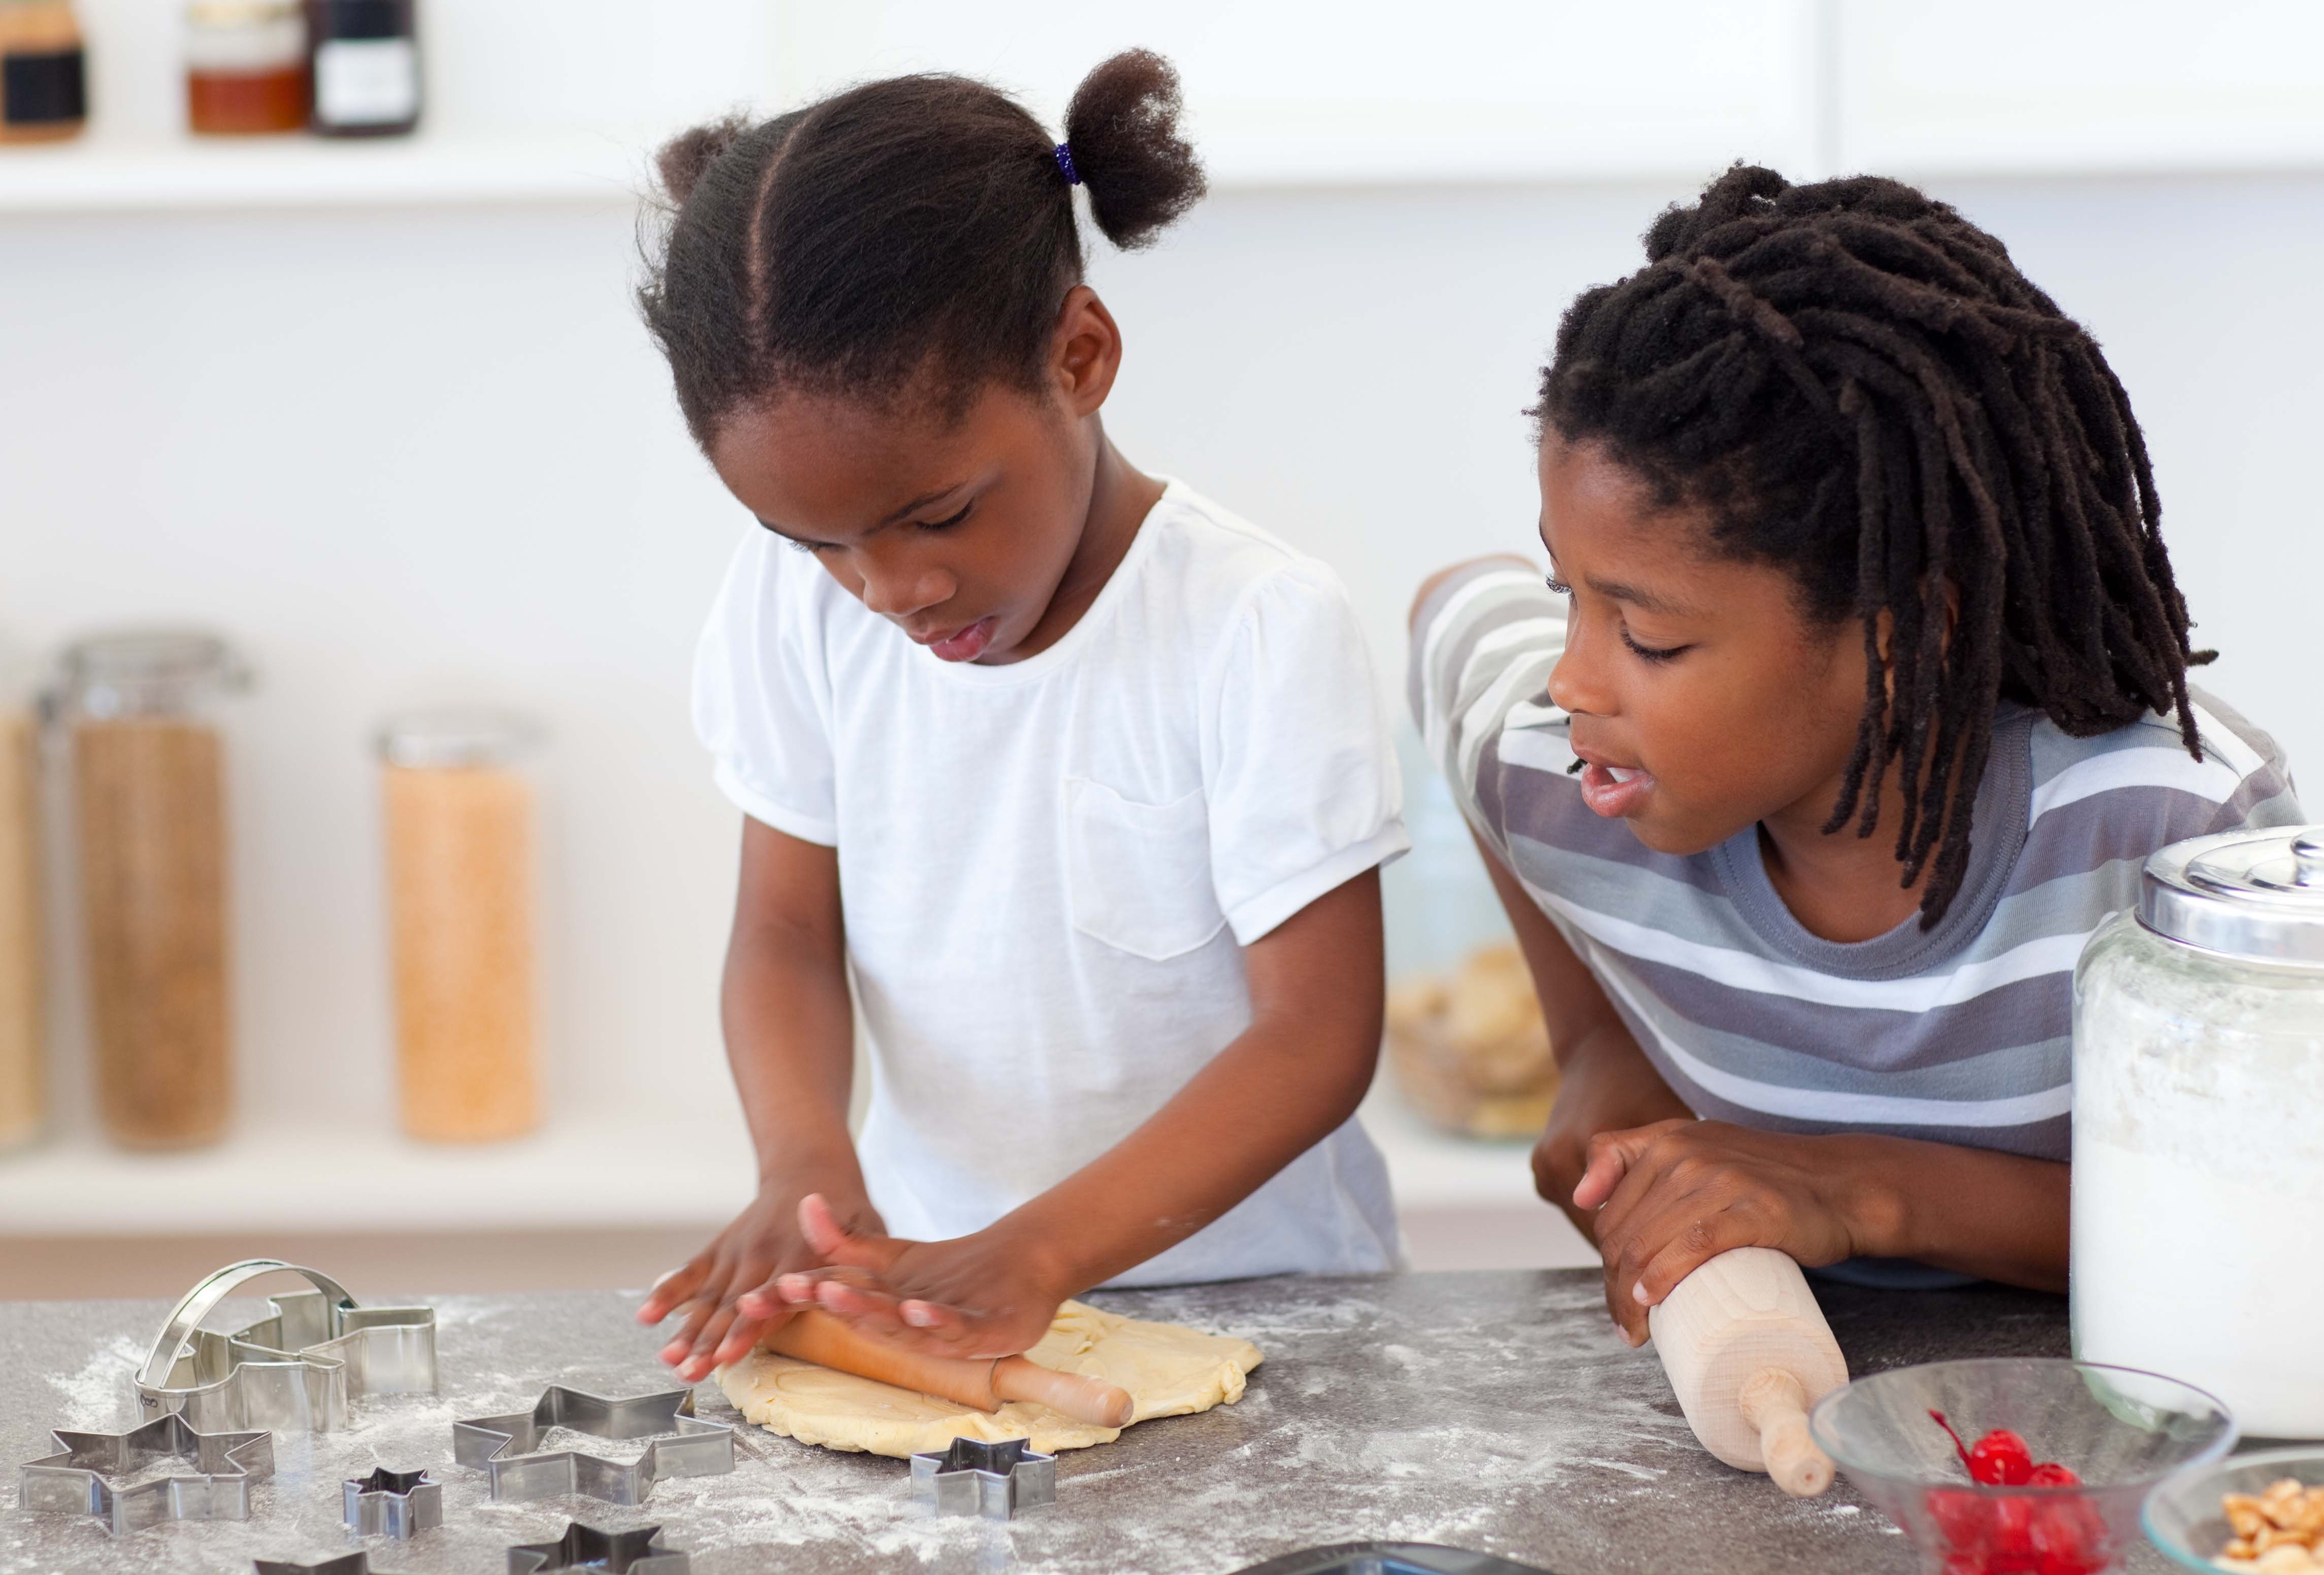 12 Ways Children Can Give Back This Holiday Season